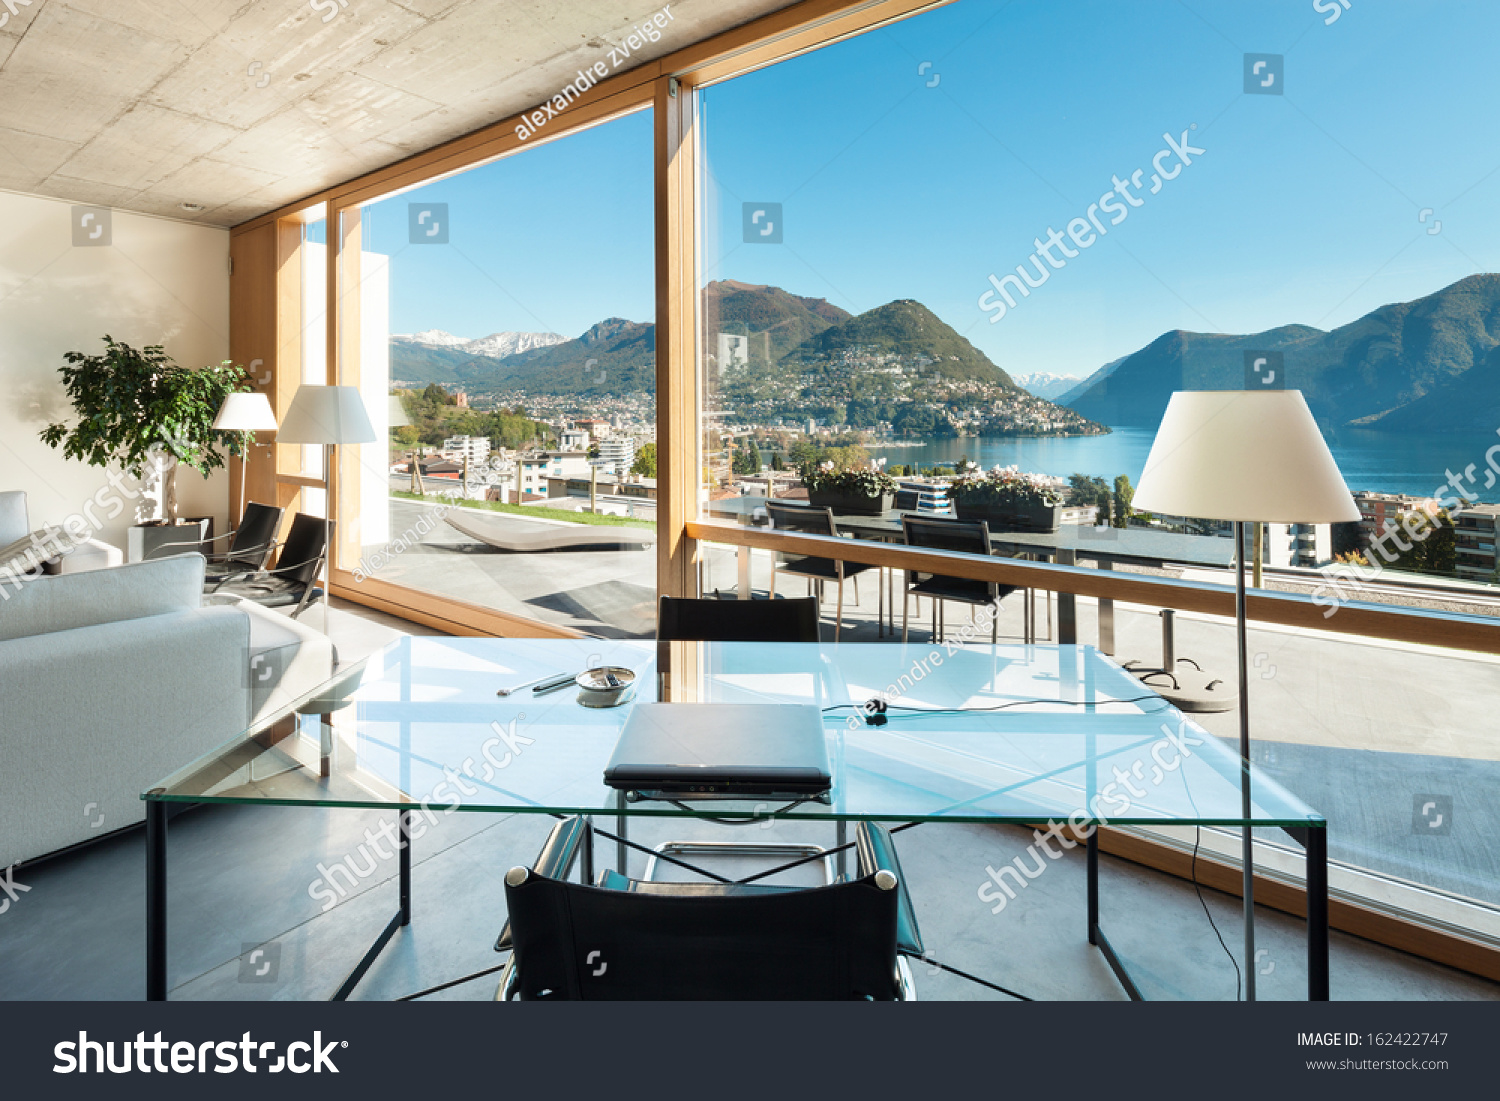 Beautiful Modern House ement Interiors View Stock Photo 162422747 ... - ^